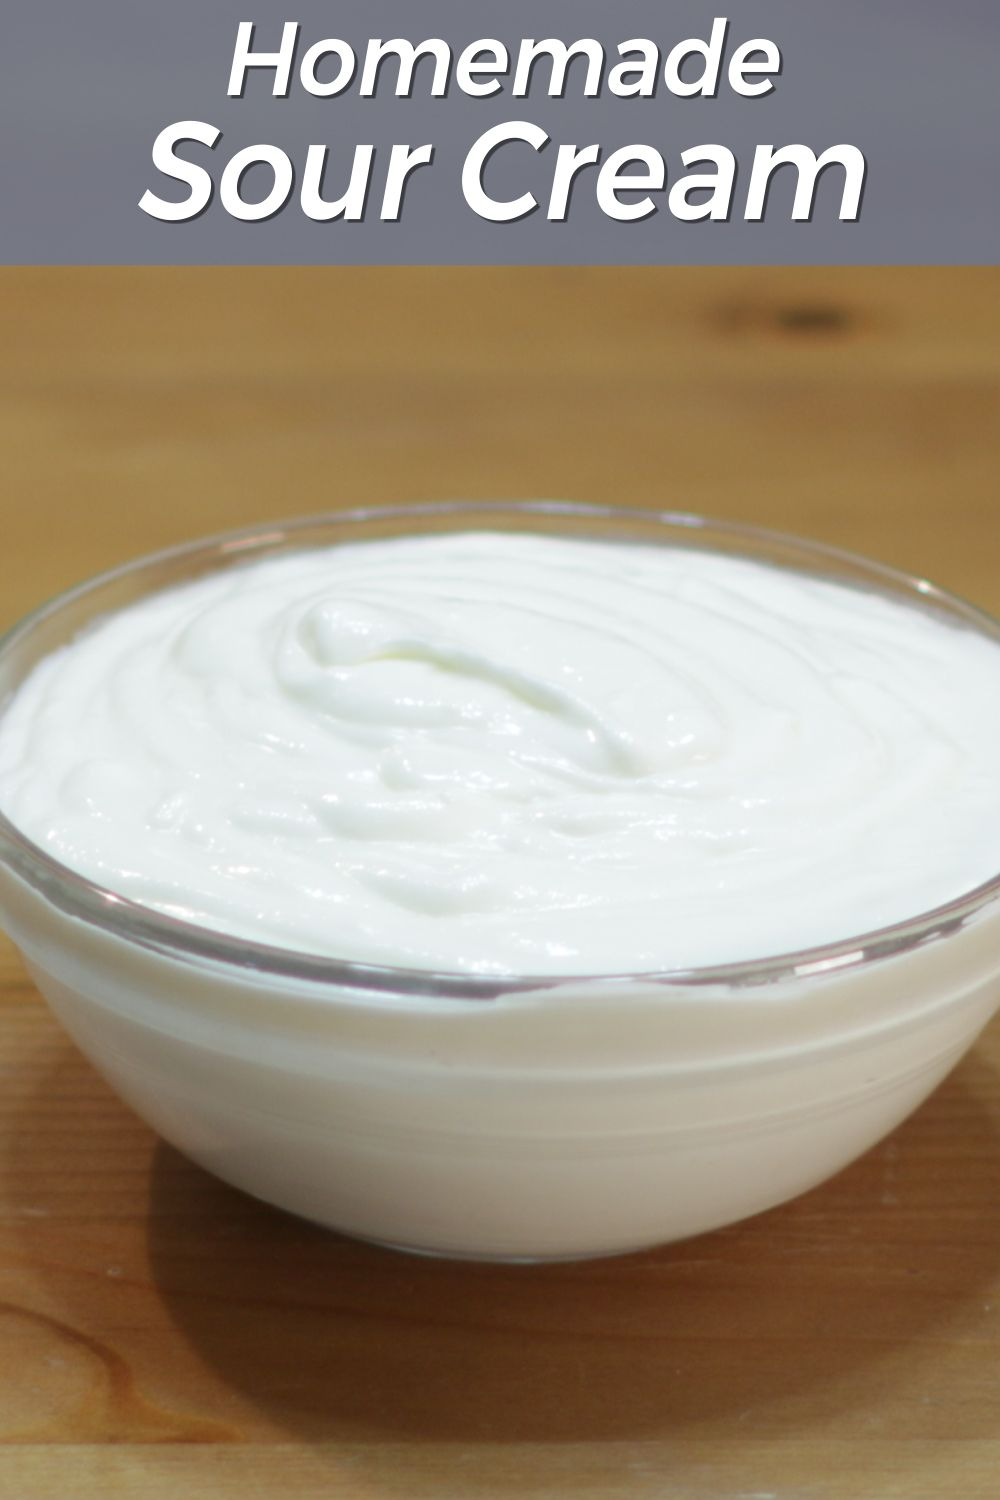 Easy Homemade Sour Cream In The Kitchen With Matt Recipe In 2020 Homemade Sour Cream Homemade Sour Cream Recipe Sour Cream Recipes